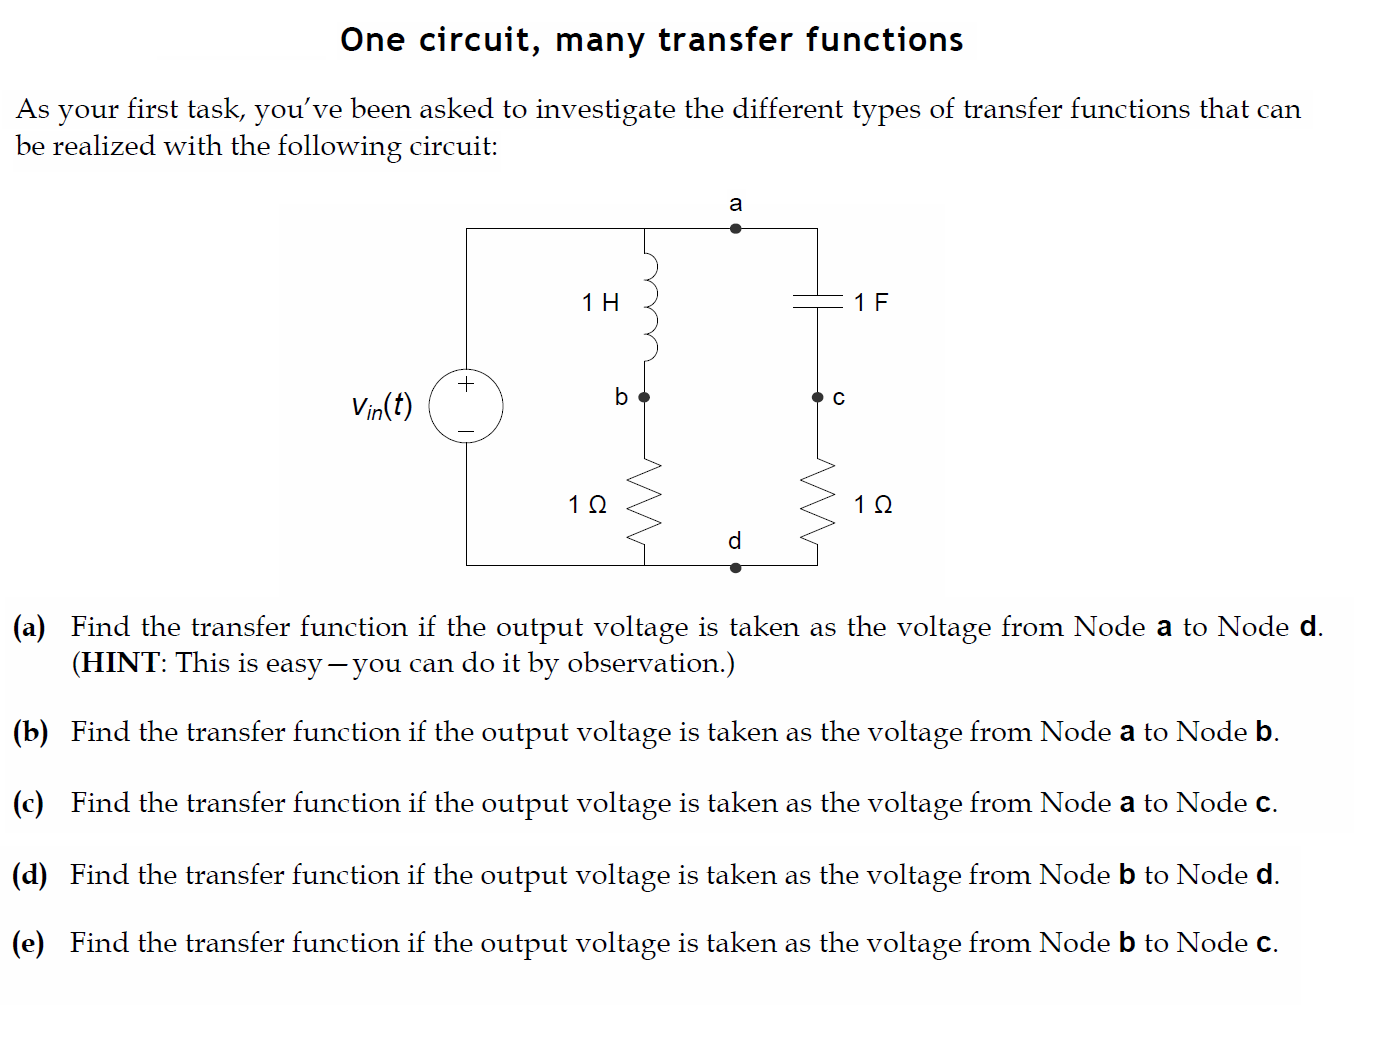 Find the transfer function if the output voltage i